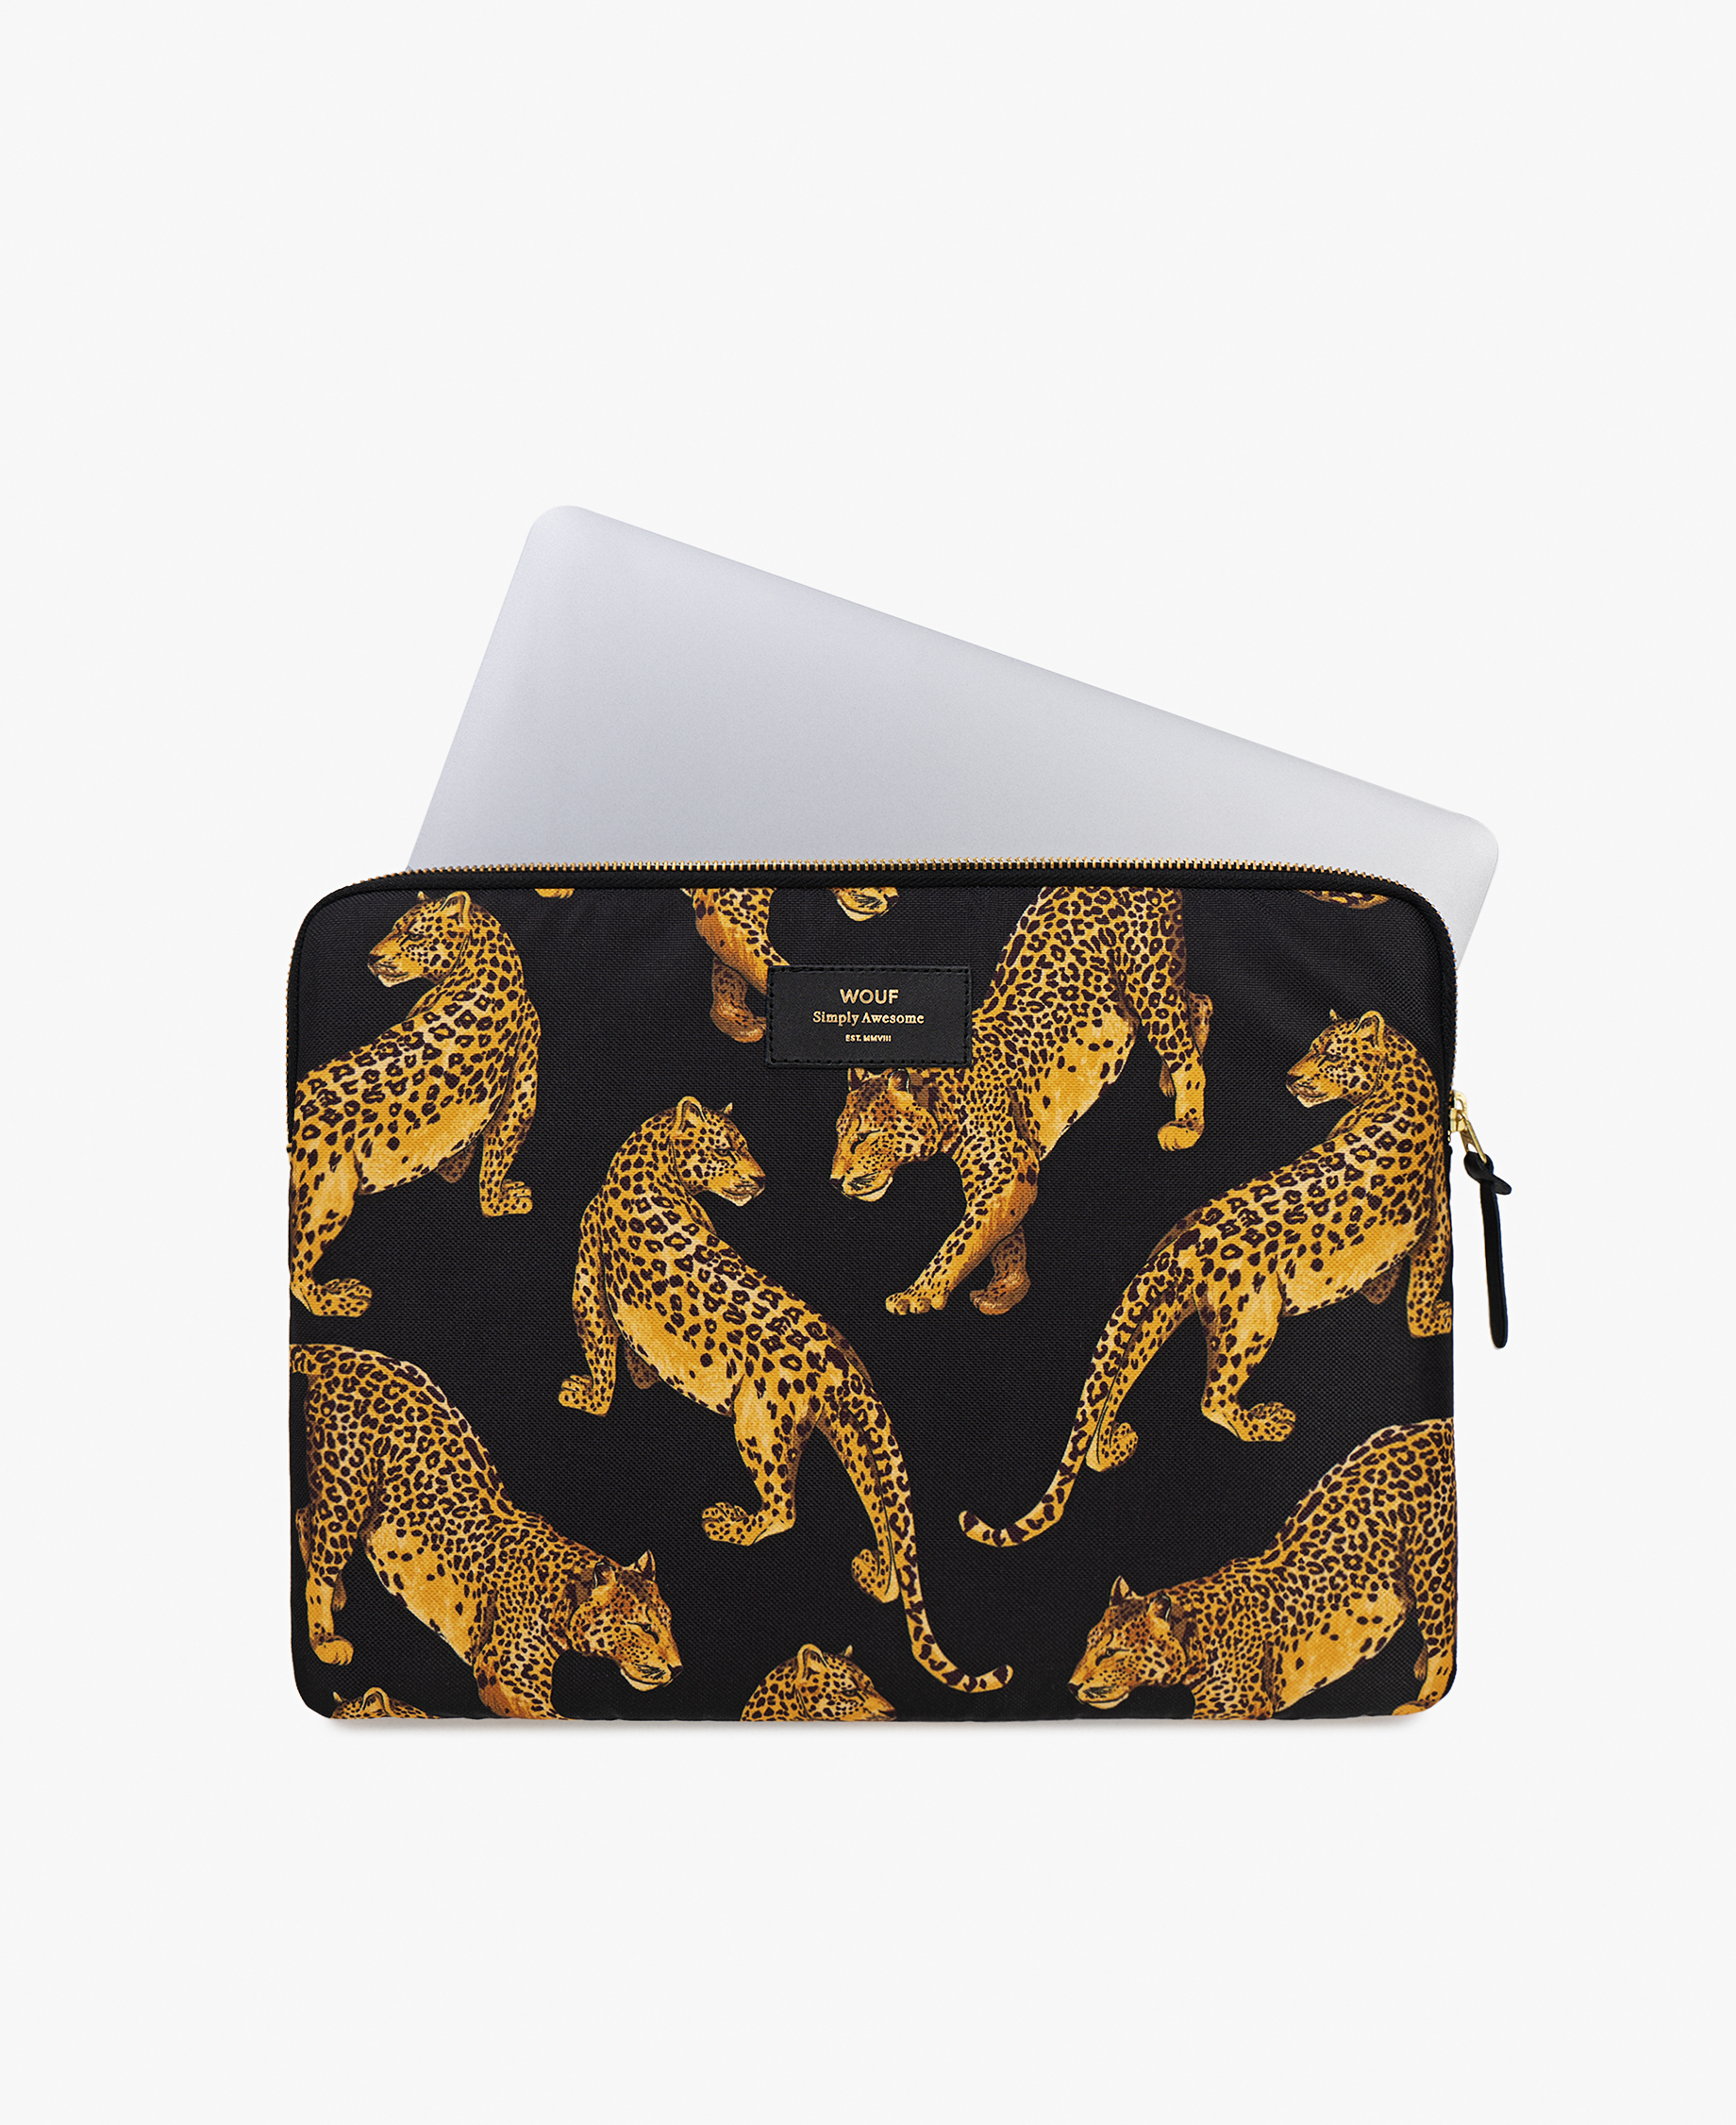 animal laptop cover